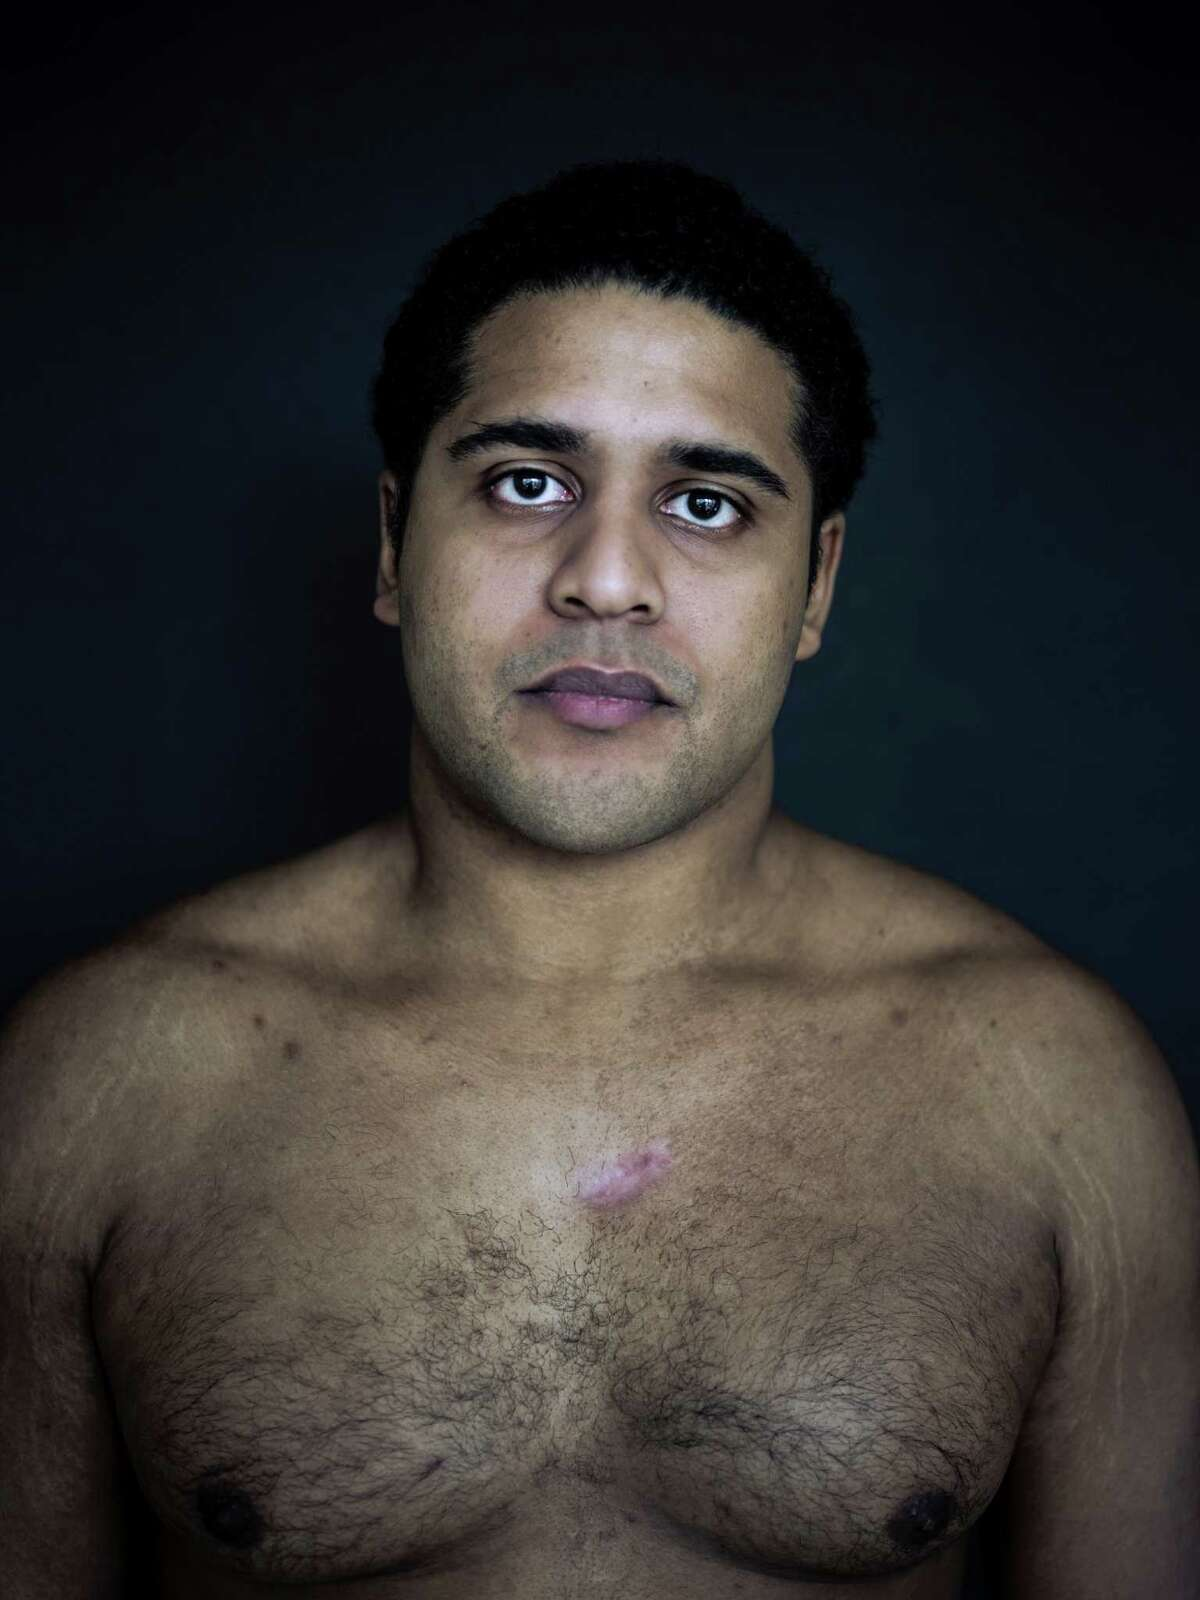 Alan Pean, who was shot in by Houston police inside St. Joseph Medical Center, shows the scar on his chest in this photograph taken in January.